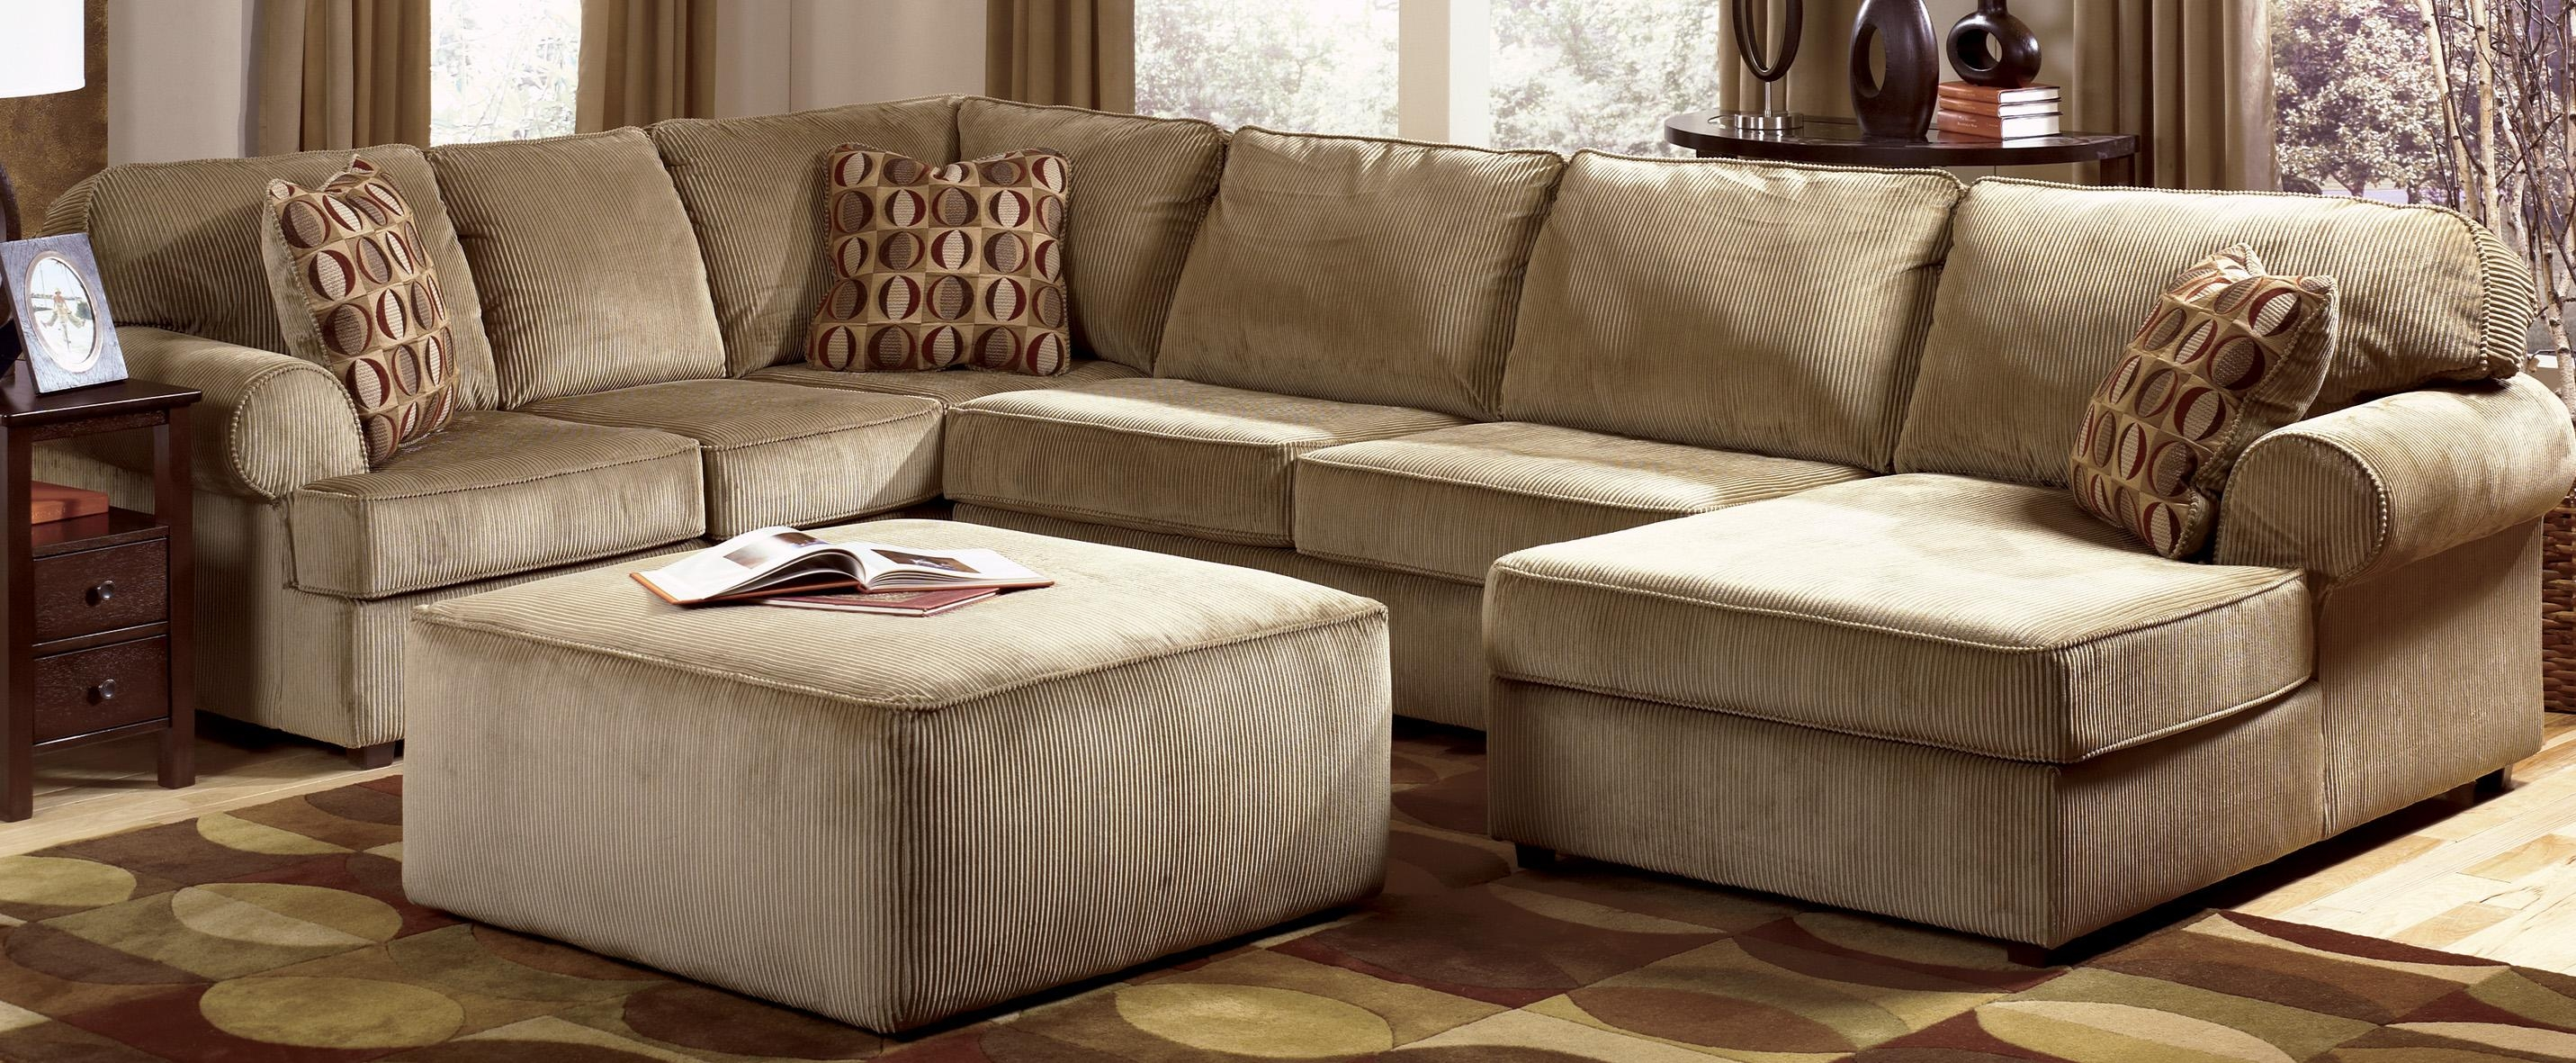 Sofas: Oversized Sofas That Are Ready For Hours Of Lounging Time With Regard To Sofa With Chaise And Ottoman (Image 19 of 20)